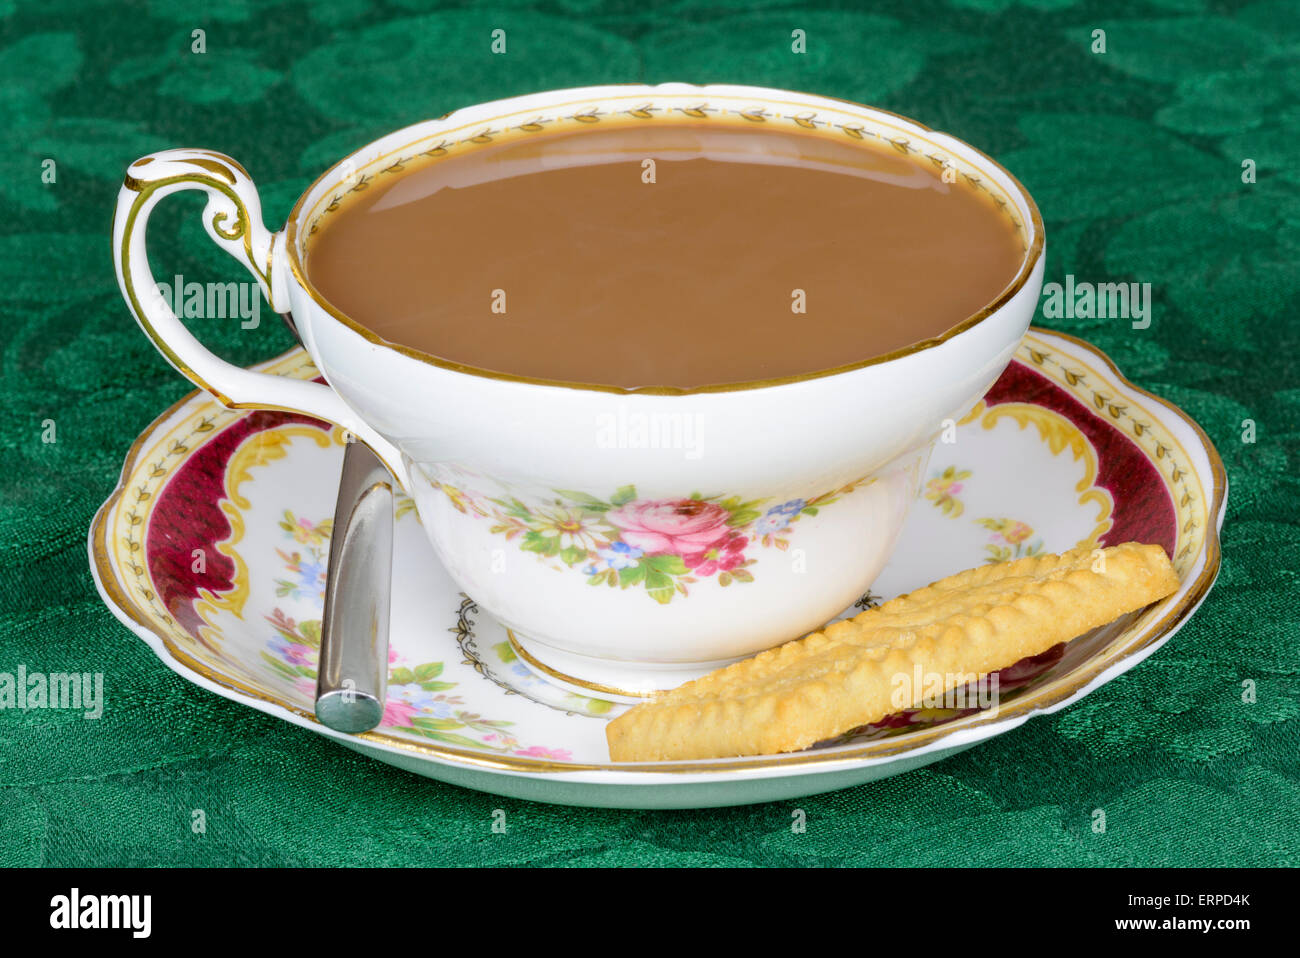 Cup of tea and a biscuit in a fine china cup with saucer. - Stock Image